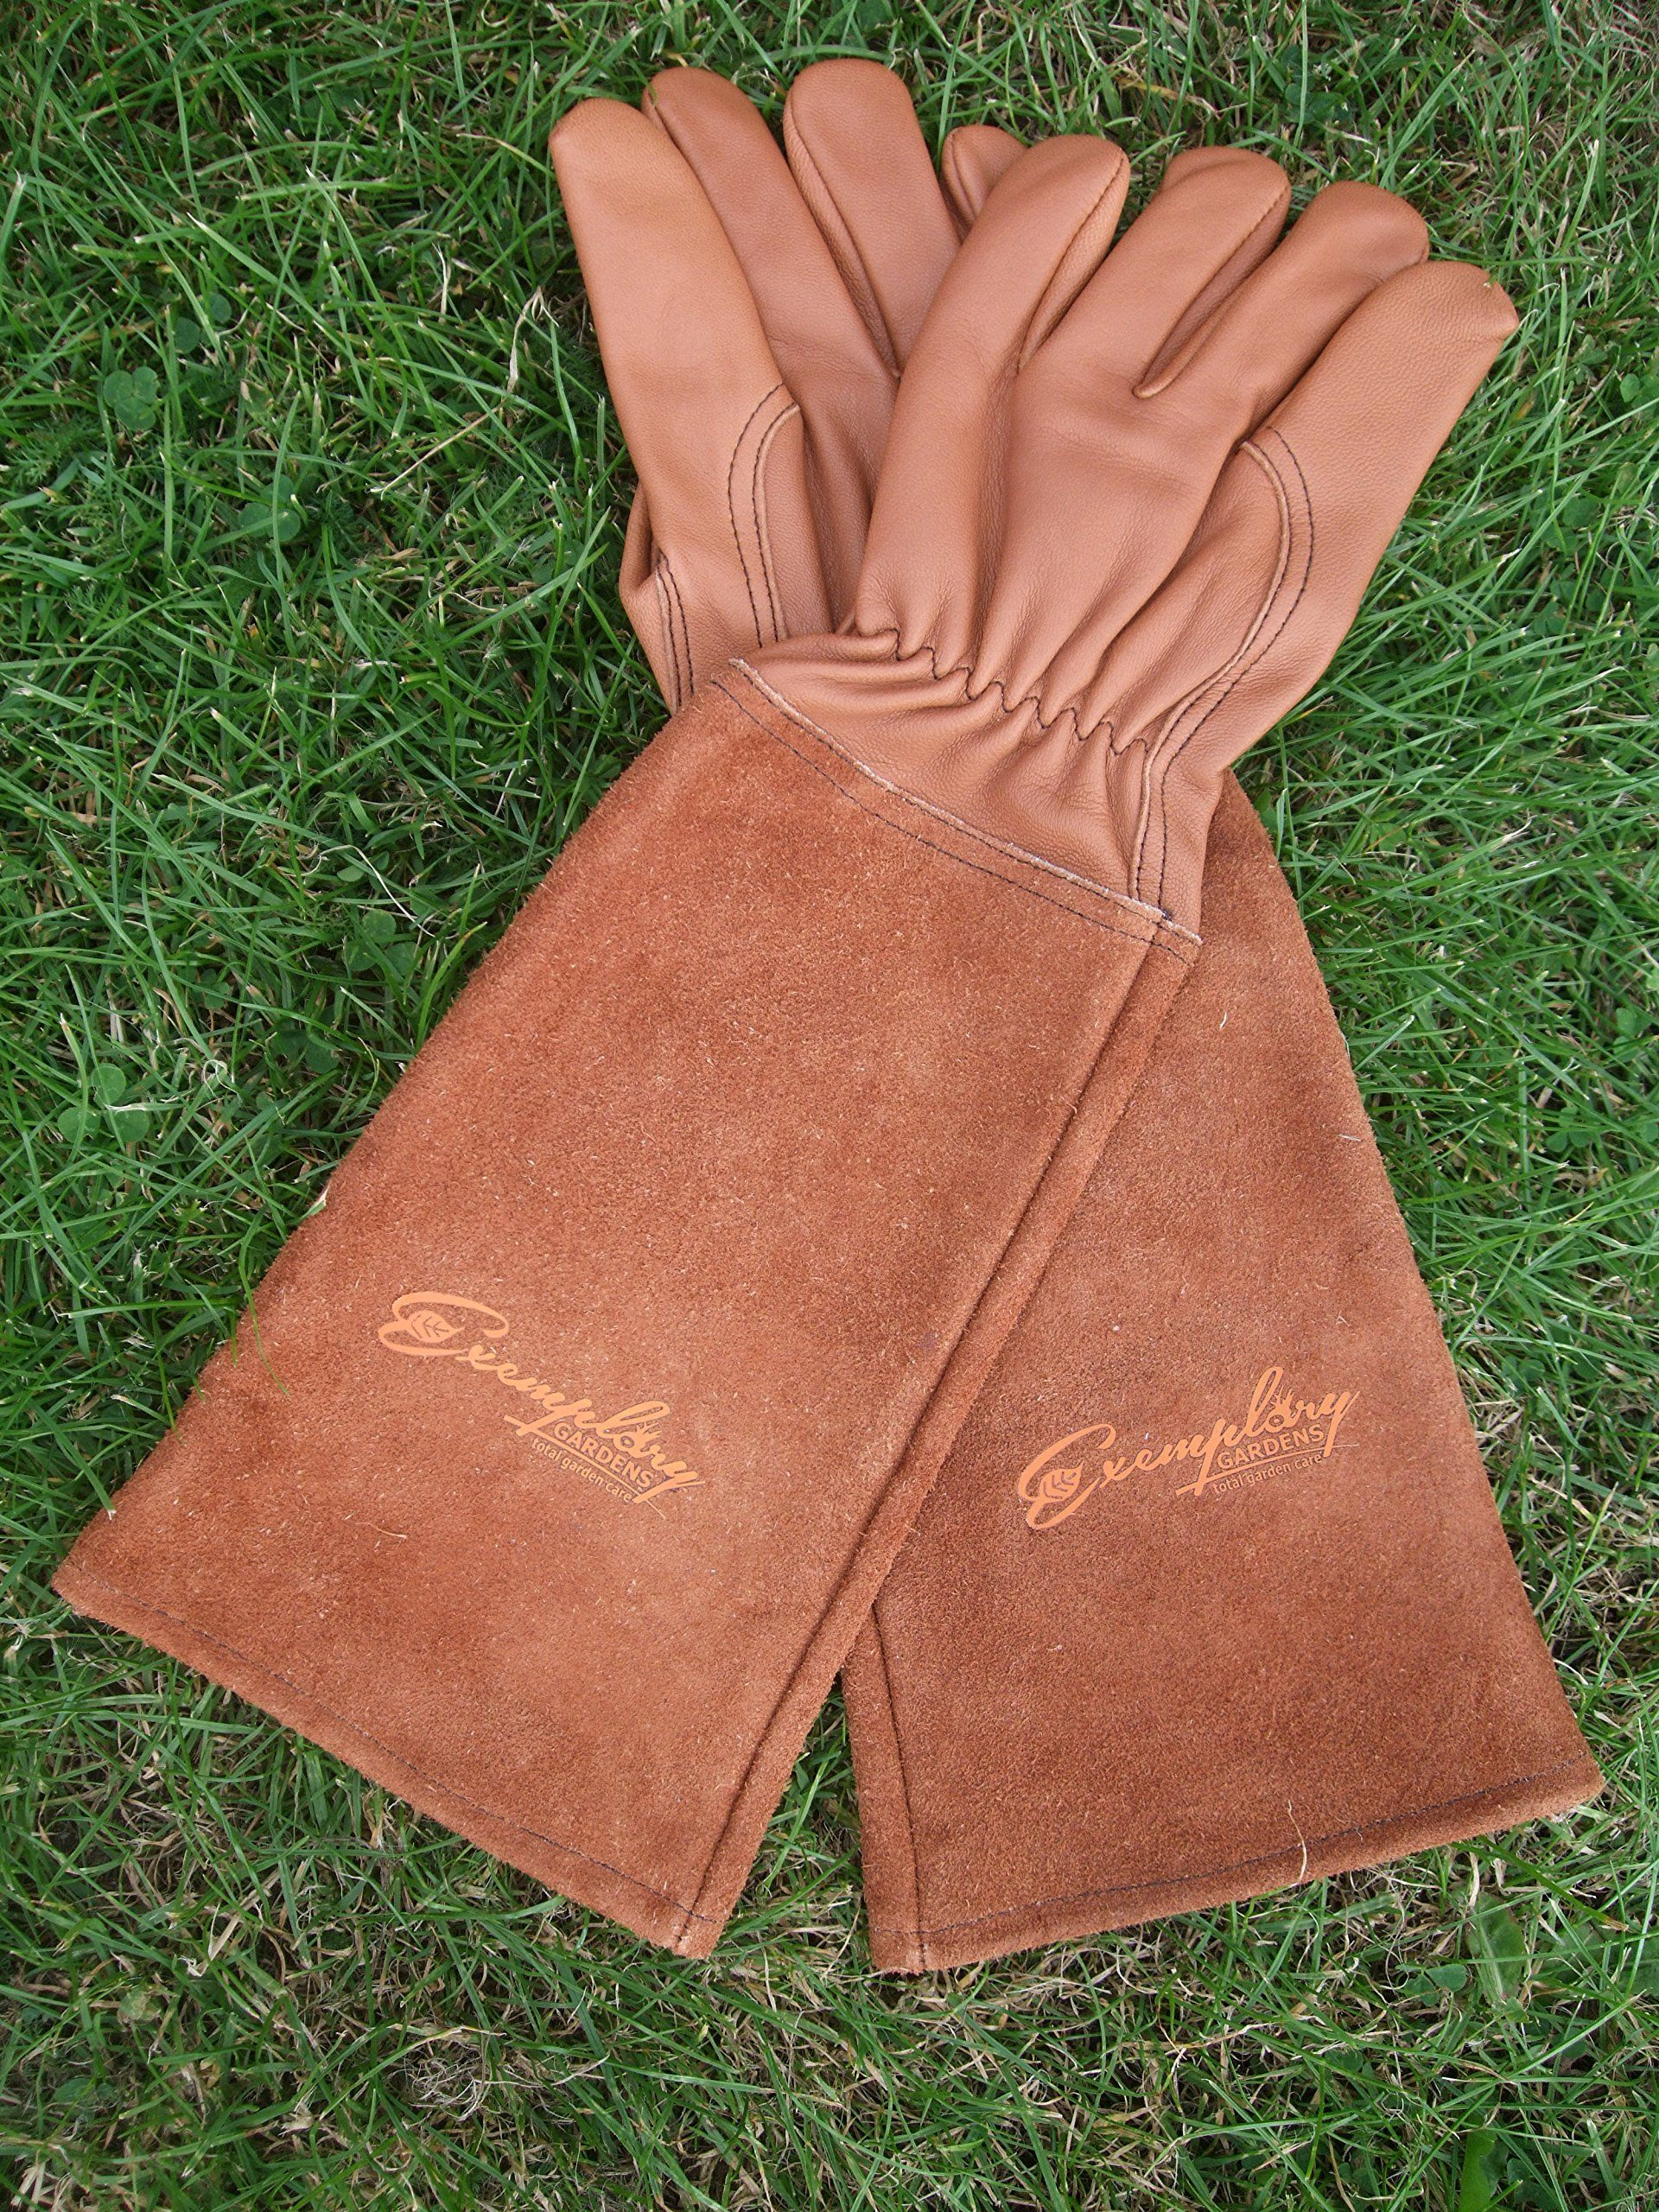 Rose Pruning Gloves For Men And Women. Thorn Proof Goatskin Leather Gardening  Gloves With Long Cowhide Gauntlet To Protect Your Arms Until The Elbow  Medium ...